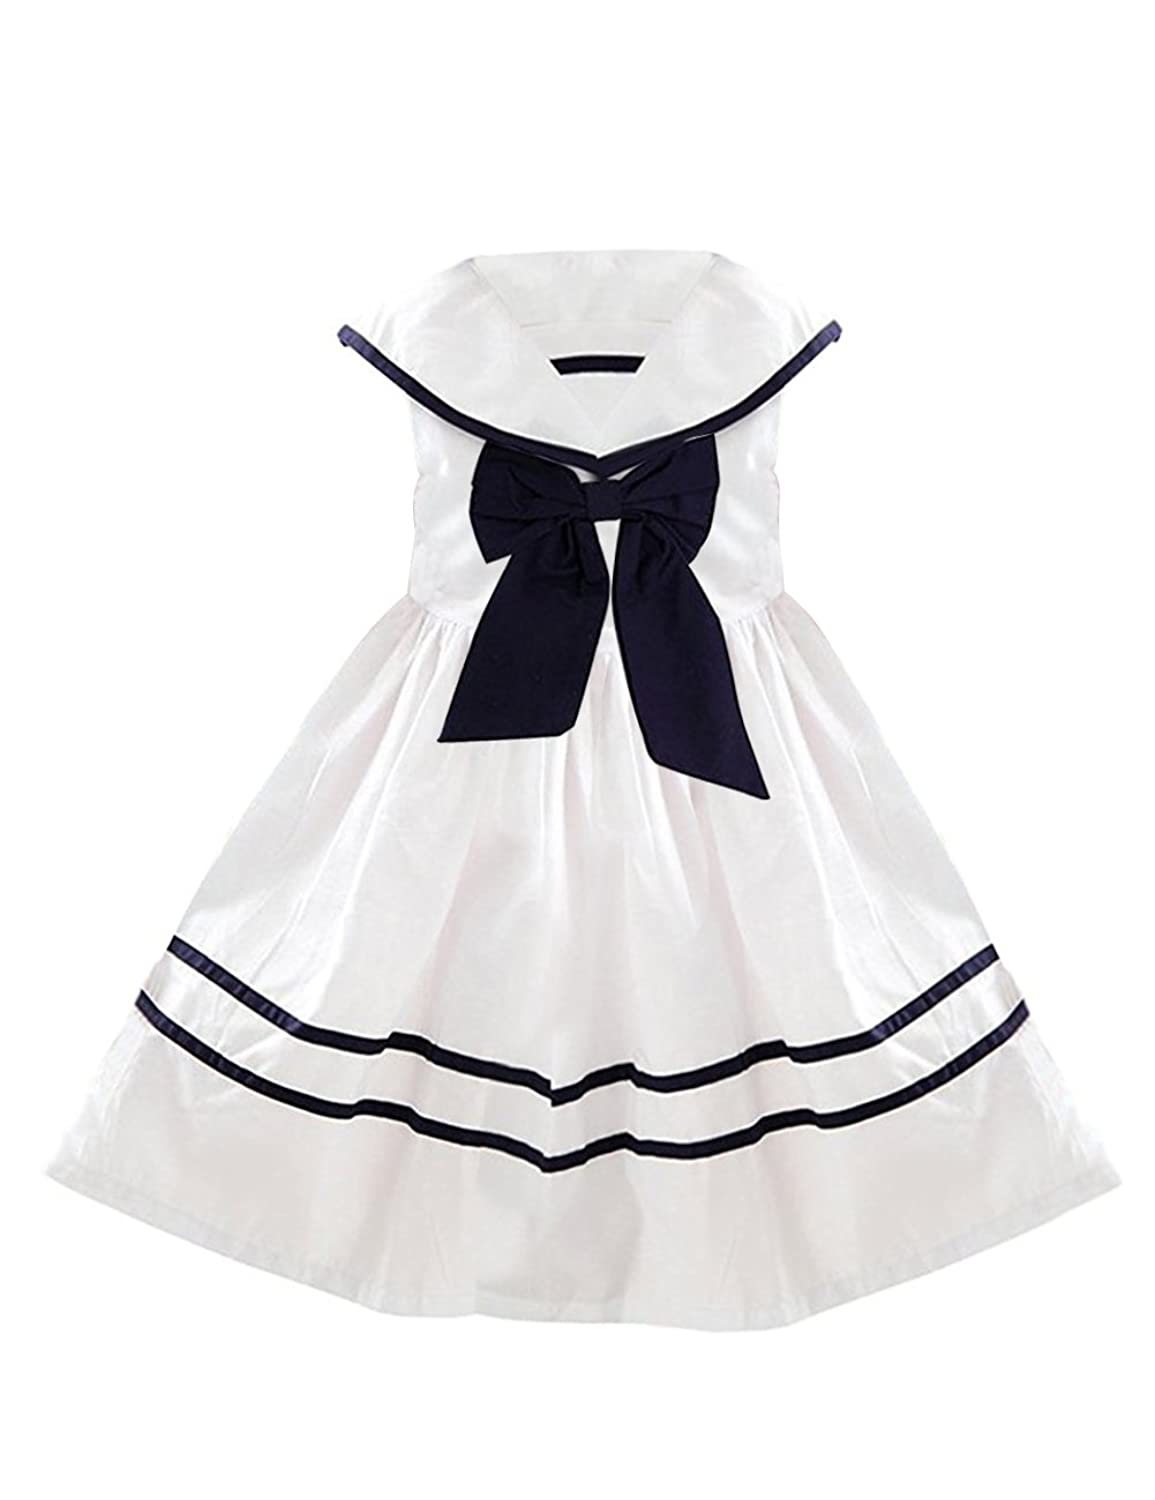 1940s Children's Clothing: Girls, Boys, Baby, Toddler YJ.GWL Girl Nautical Dress Collar Sailor Dress with Bow-Tie $17.99 AT vintagedancer.com